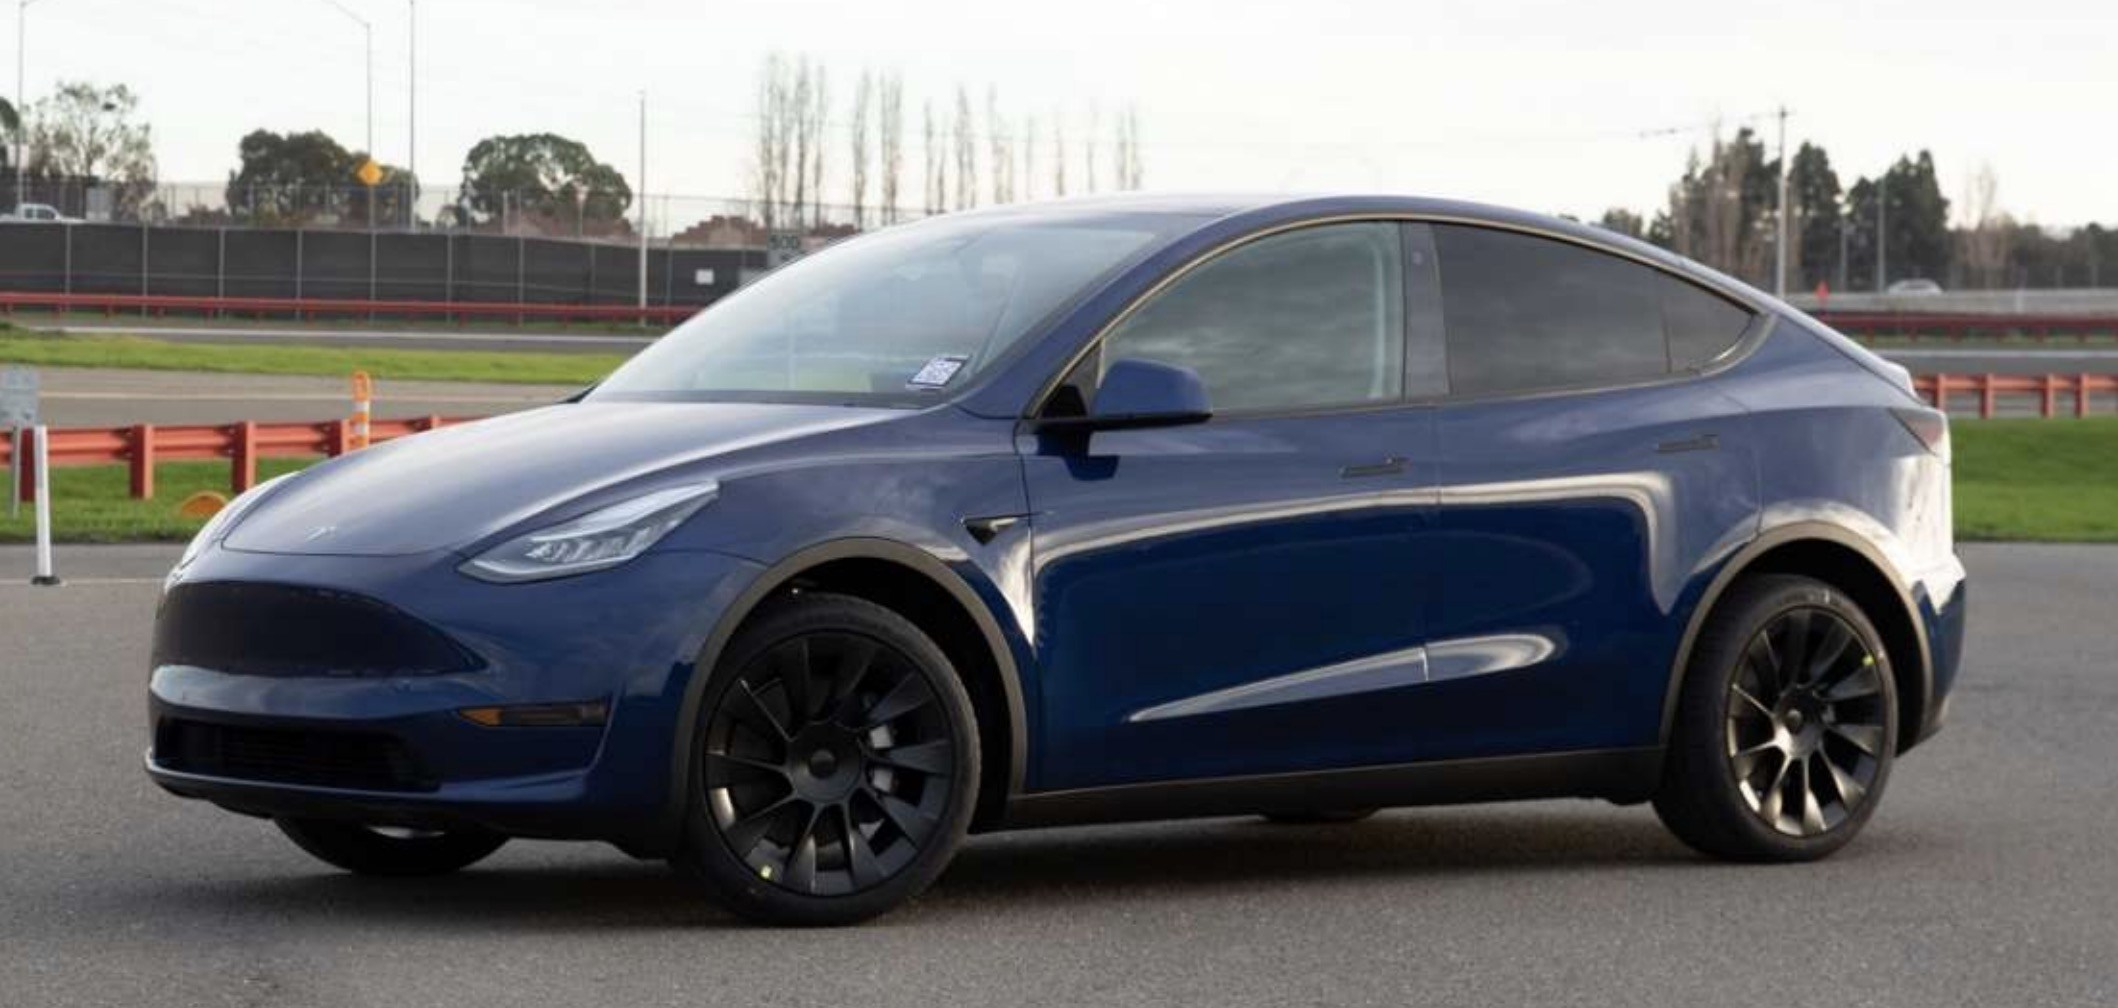 Tesla Starts Production Of 7 Seater Model Y Electric Suv With Third Row Next Month Electrek